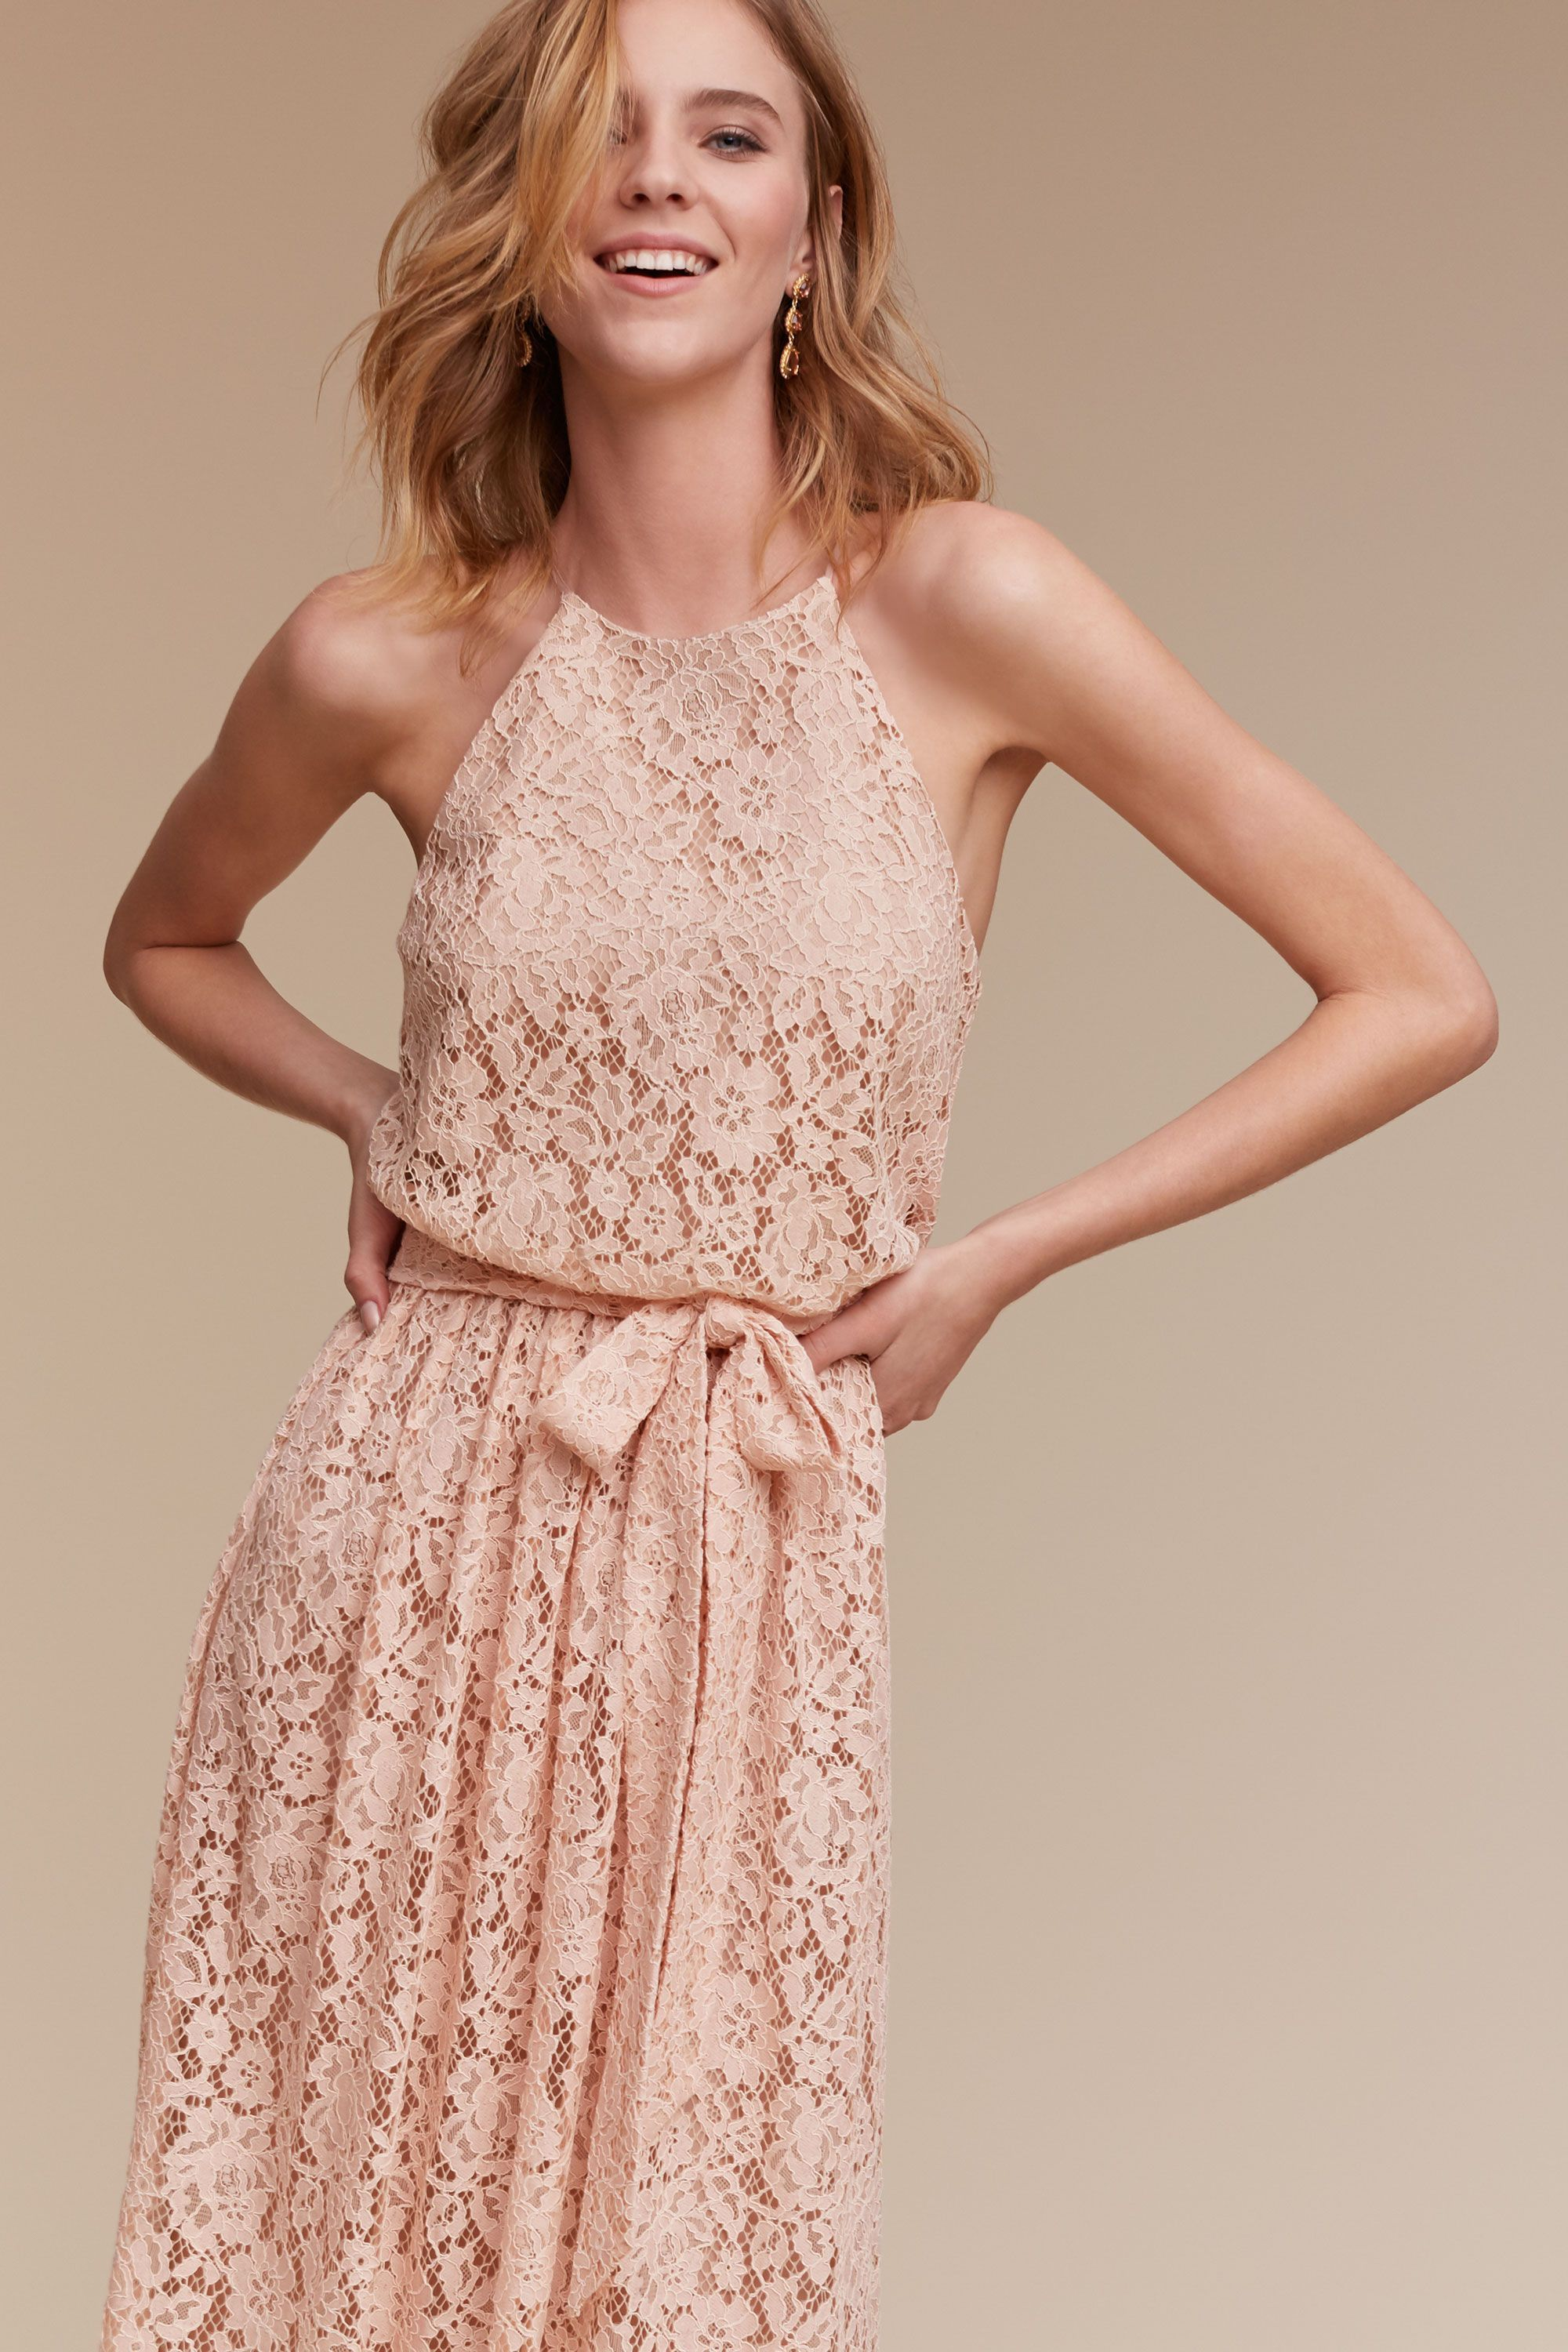 f4ca54dbaacf Alana Dress from @BHLDN I like the style of this matches Barn wedding...  and cute dress that can be worn always